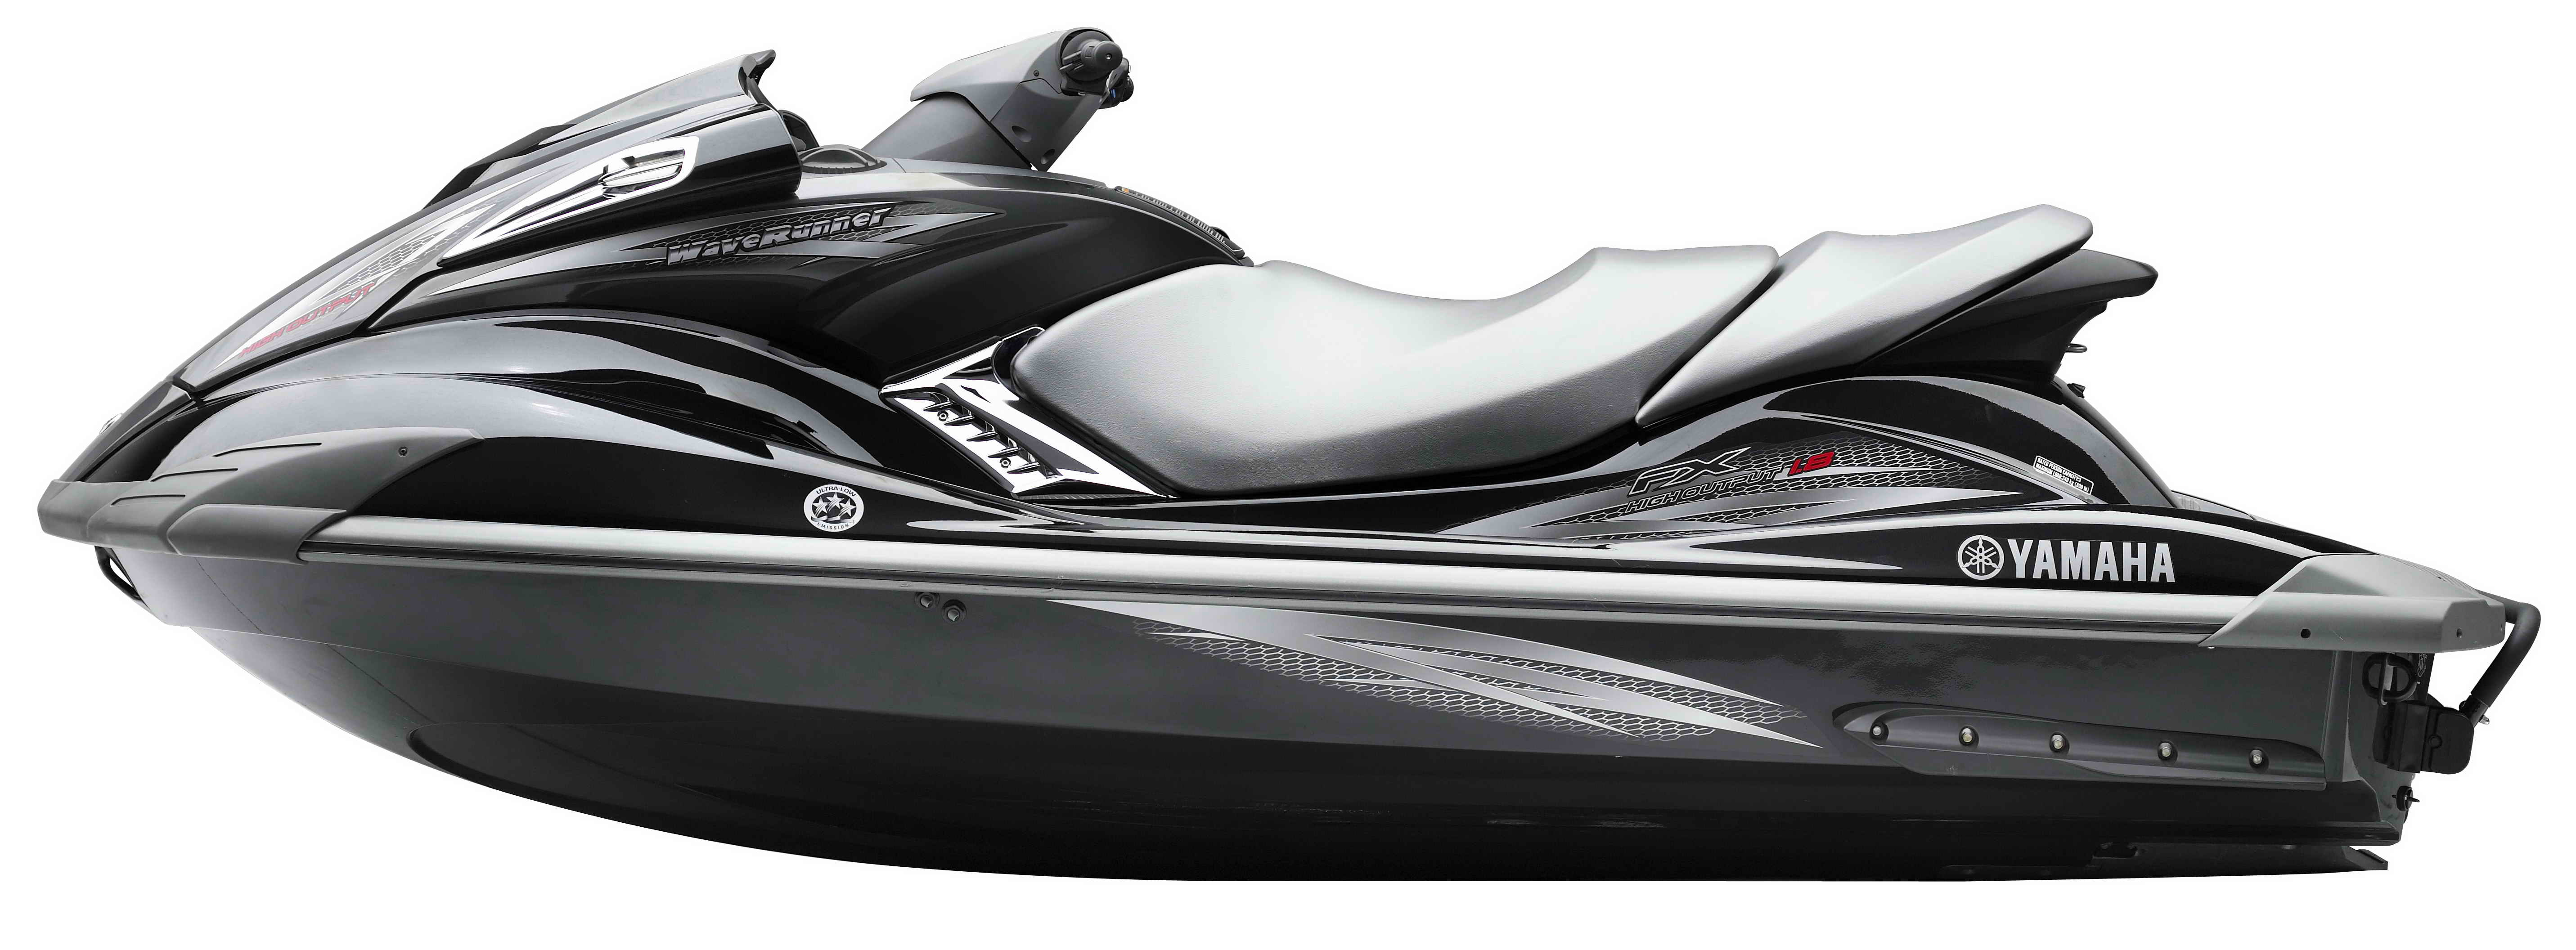 2009 Yamaha FX HO | Top Speed